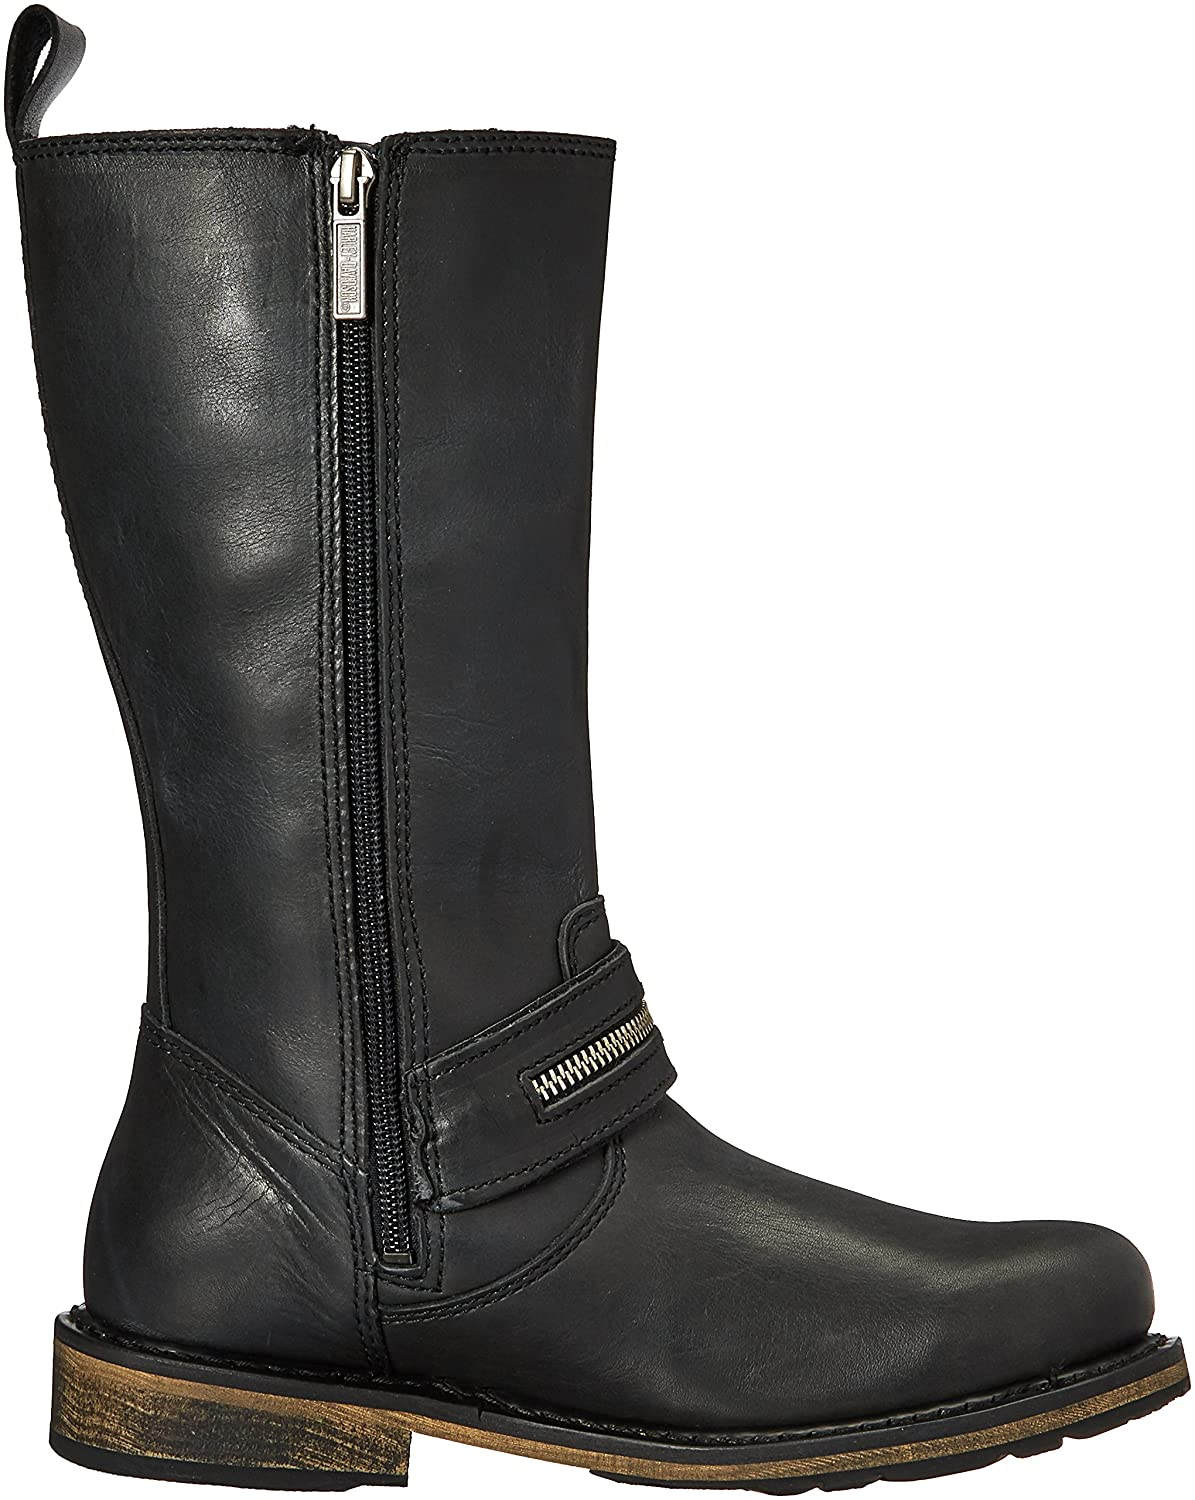 Harley-Davidson Women's Sackett Work Boot B071HF8ZD8 6 C/D US|Black